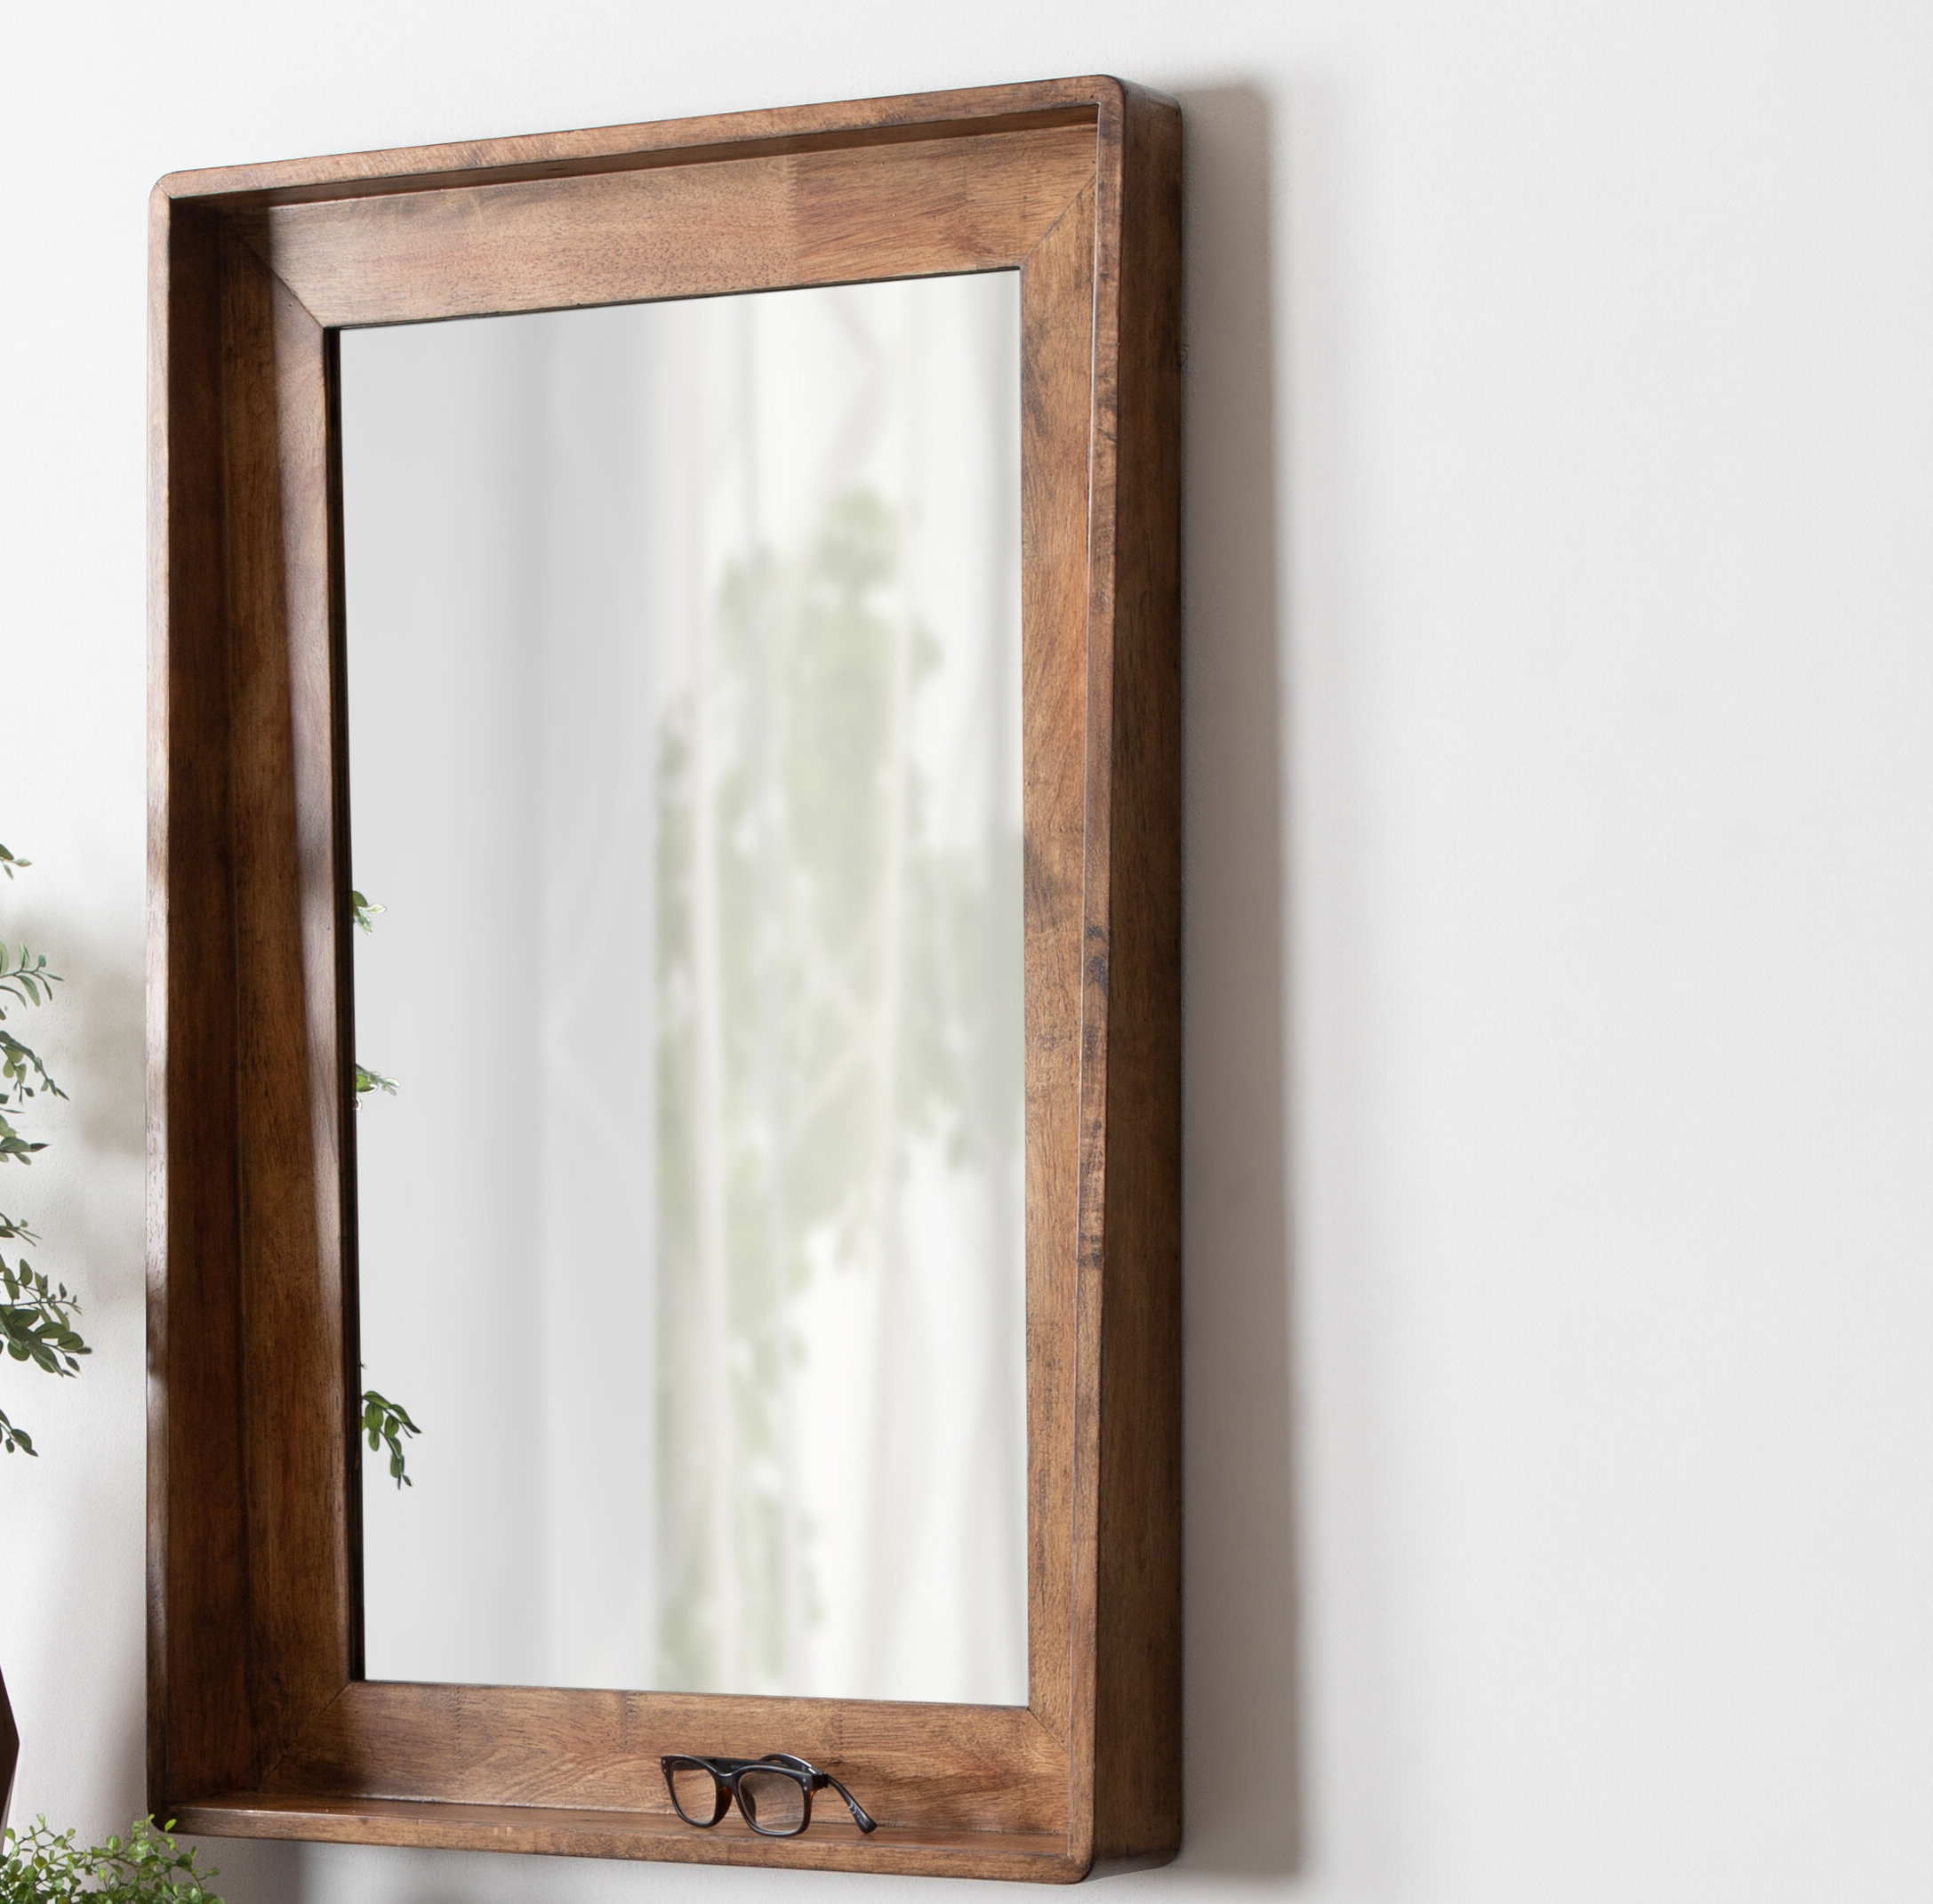 Most Popular Wood Accent Mirrors Intended For Elizabeth Vertical Wood Accent Mirror With Shelf (View 8 of 20)